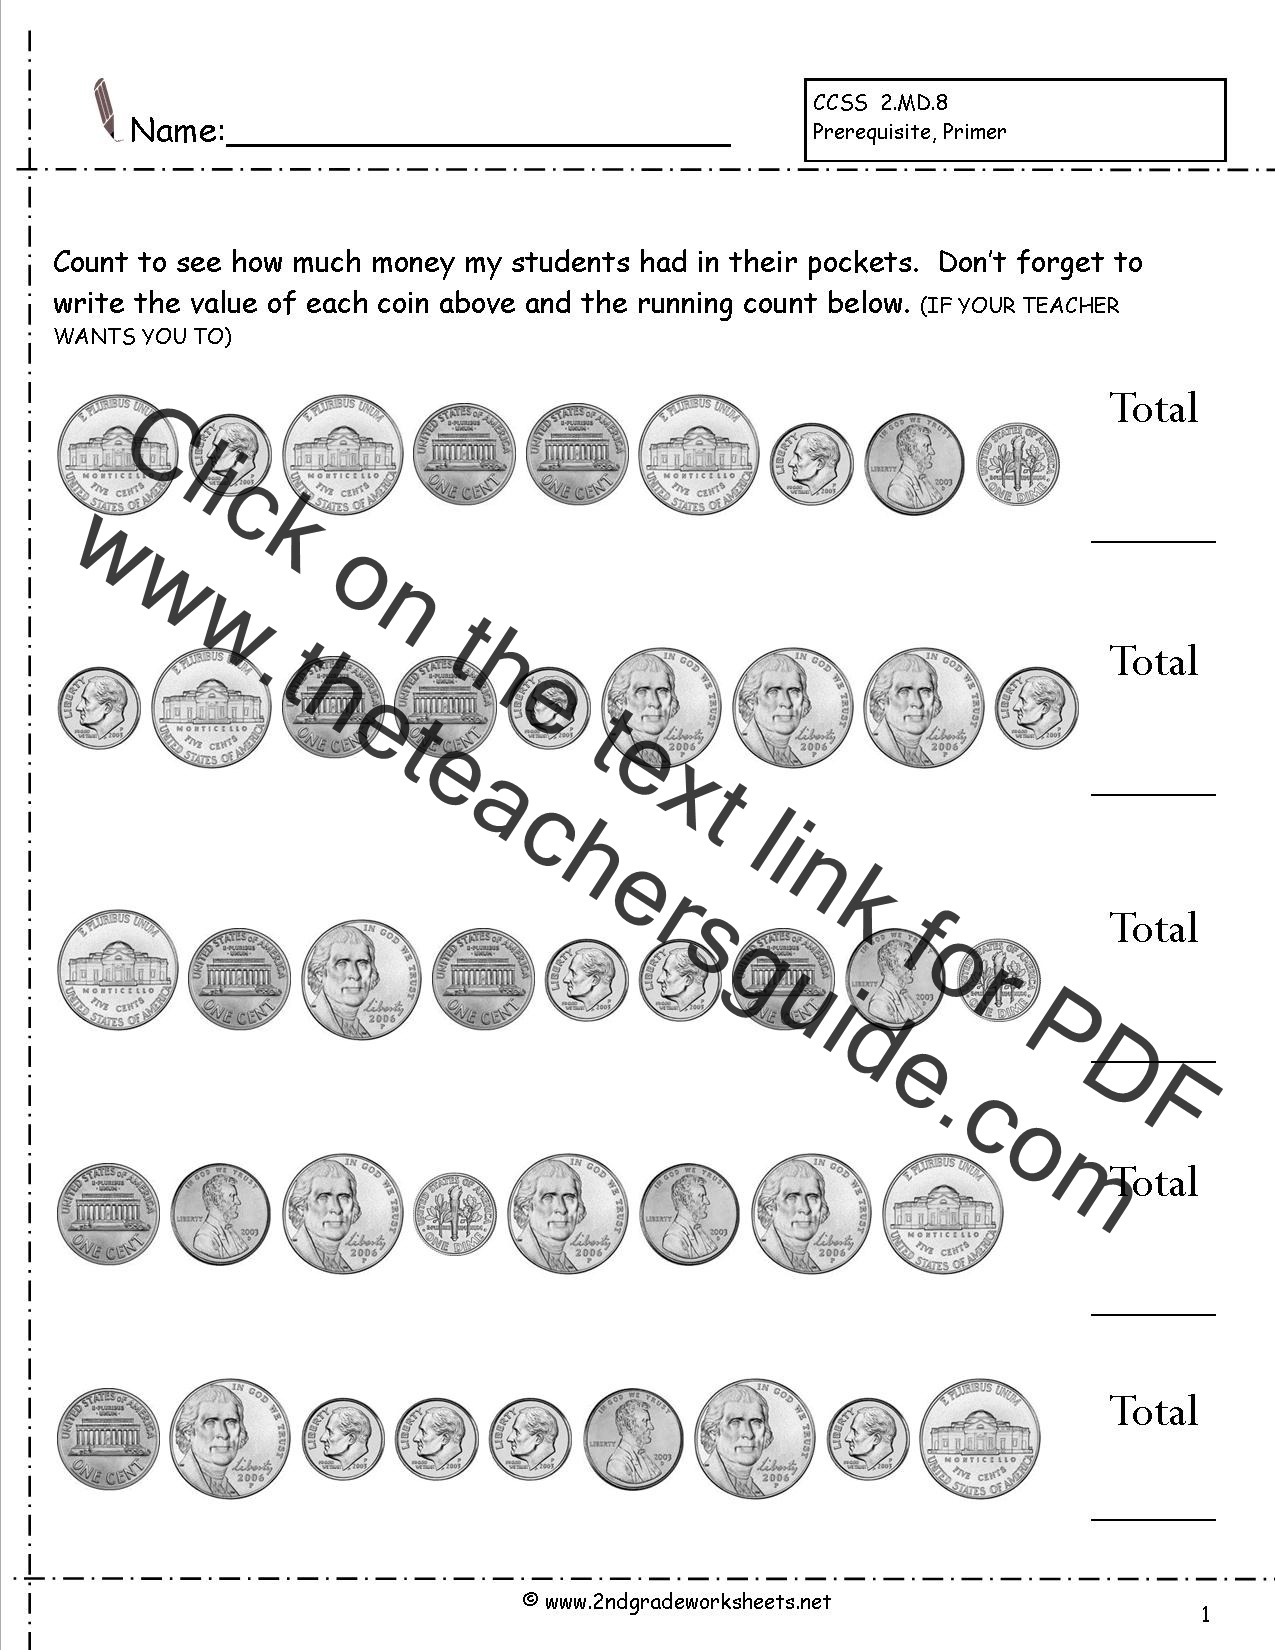 Worksheets Counting Coins Worksheets 2nd Grade counting coins and money worksheets printouts worksheet